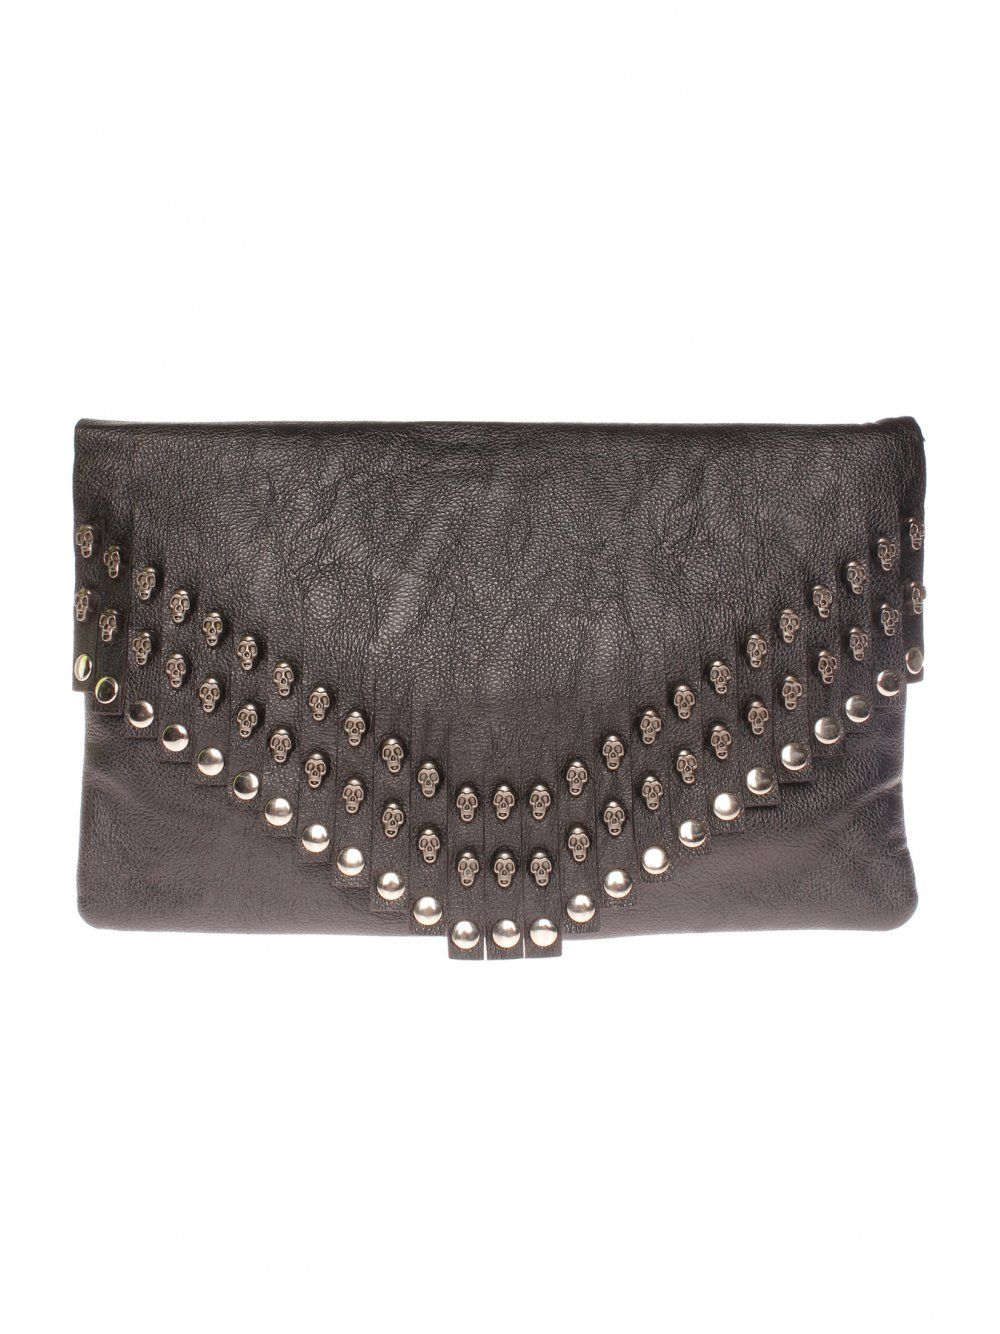 Black Leather Look Fringed Skull Embellished Clutch Bag